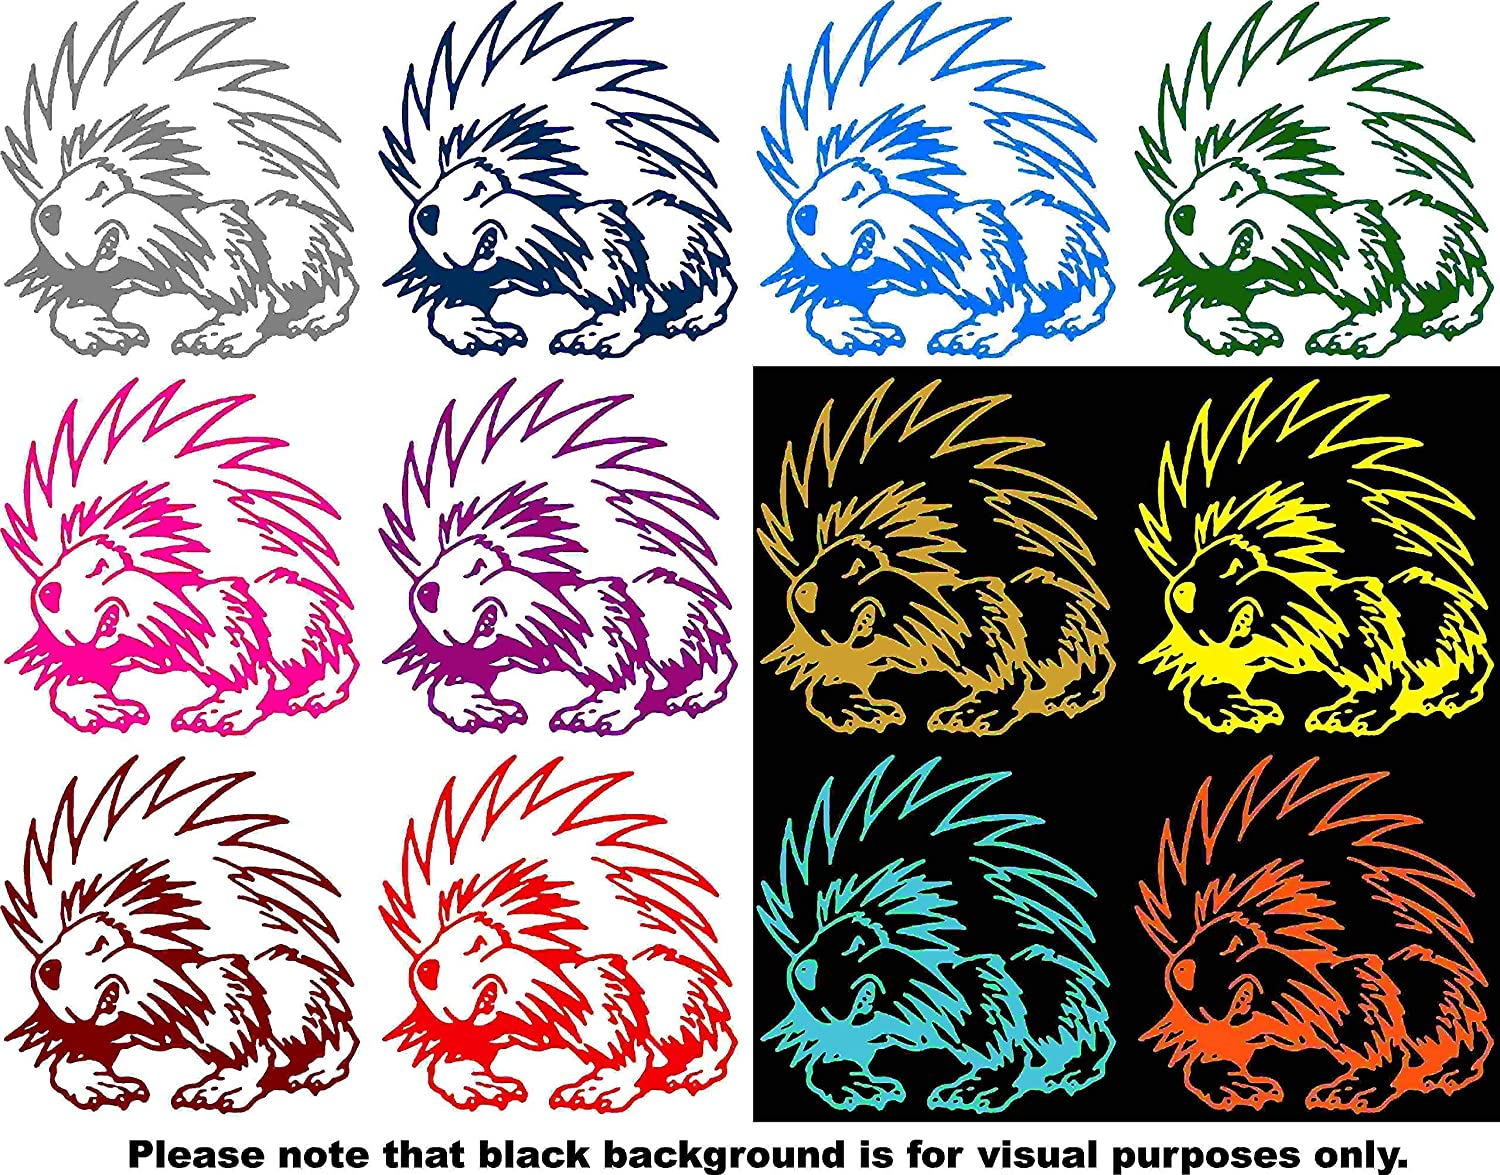 Animal Porcupine Car Window Tumblers Wall Decal Sticker Vinyl Laptops Cellphones Phones Tablets Ipads Helmets Motorcycles Computer Towers V and T Gifts